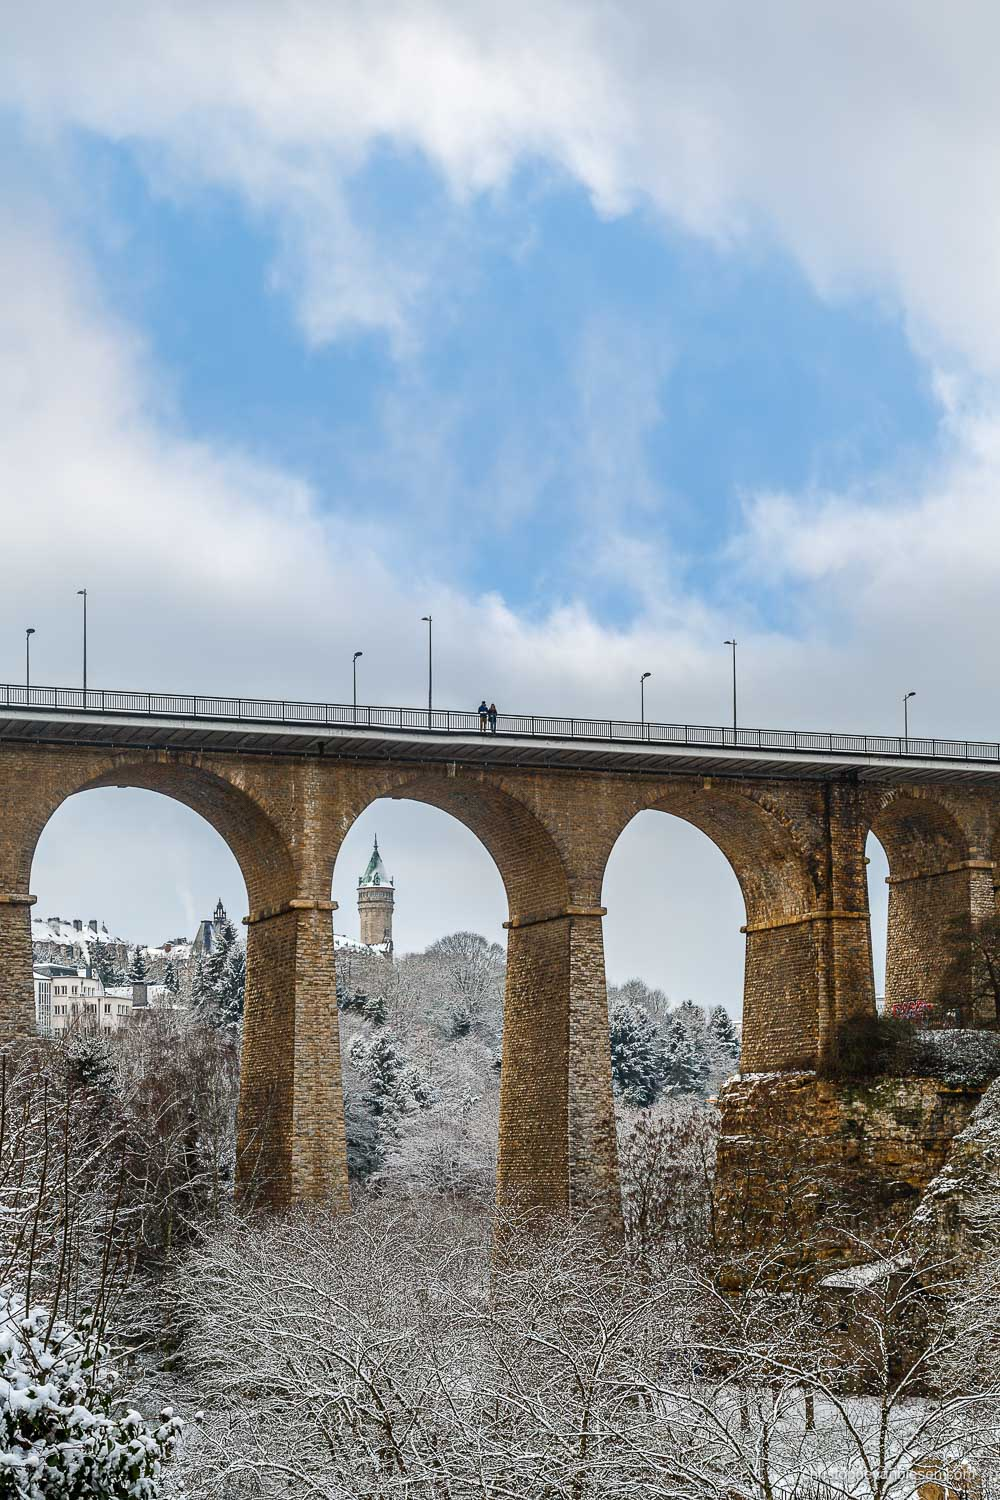 Winter in Luxembourg - The tower of the BCEE seen beneath the arches of the Passerelle during winter in Winter in Luxembourg - Cold Hands, Warm Hearts